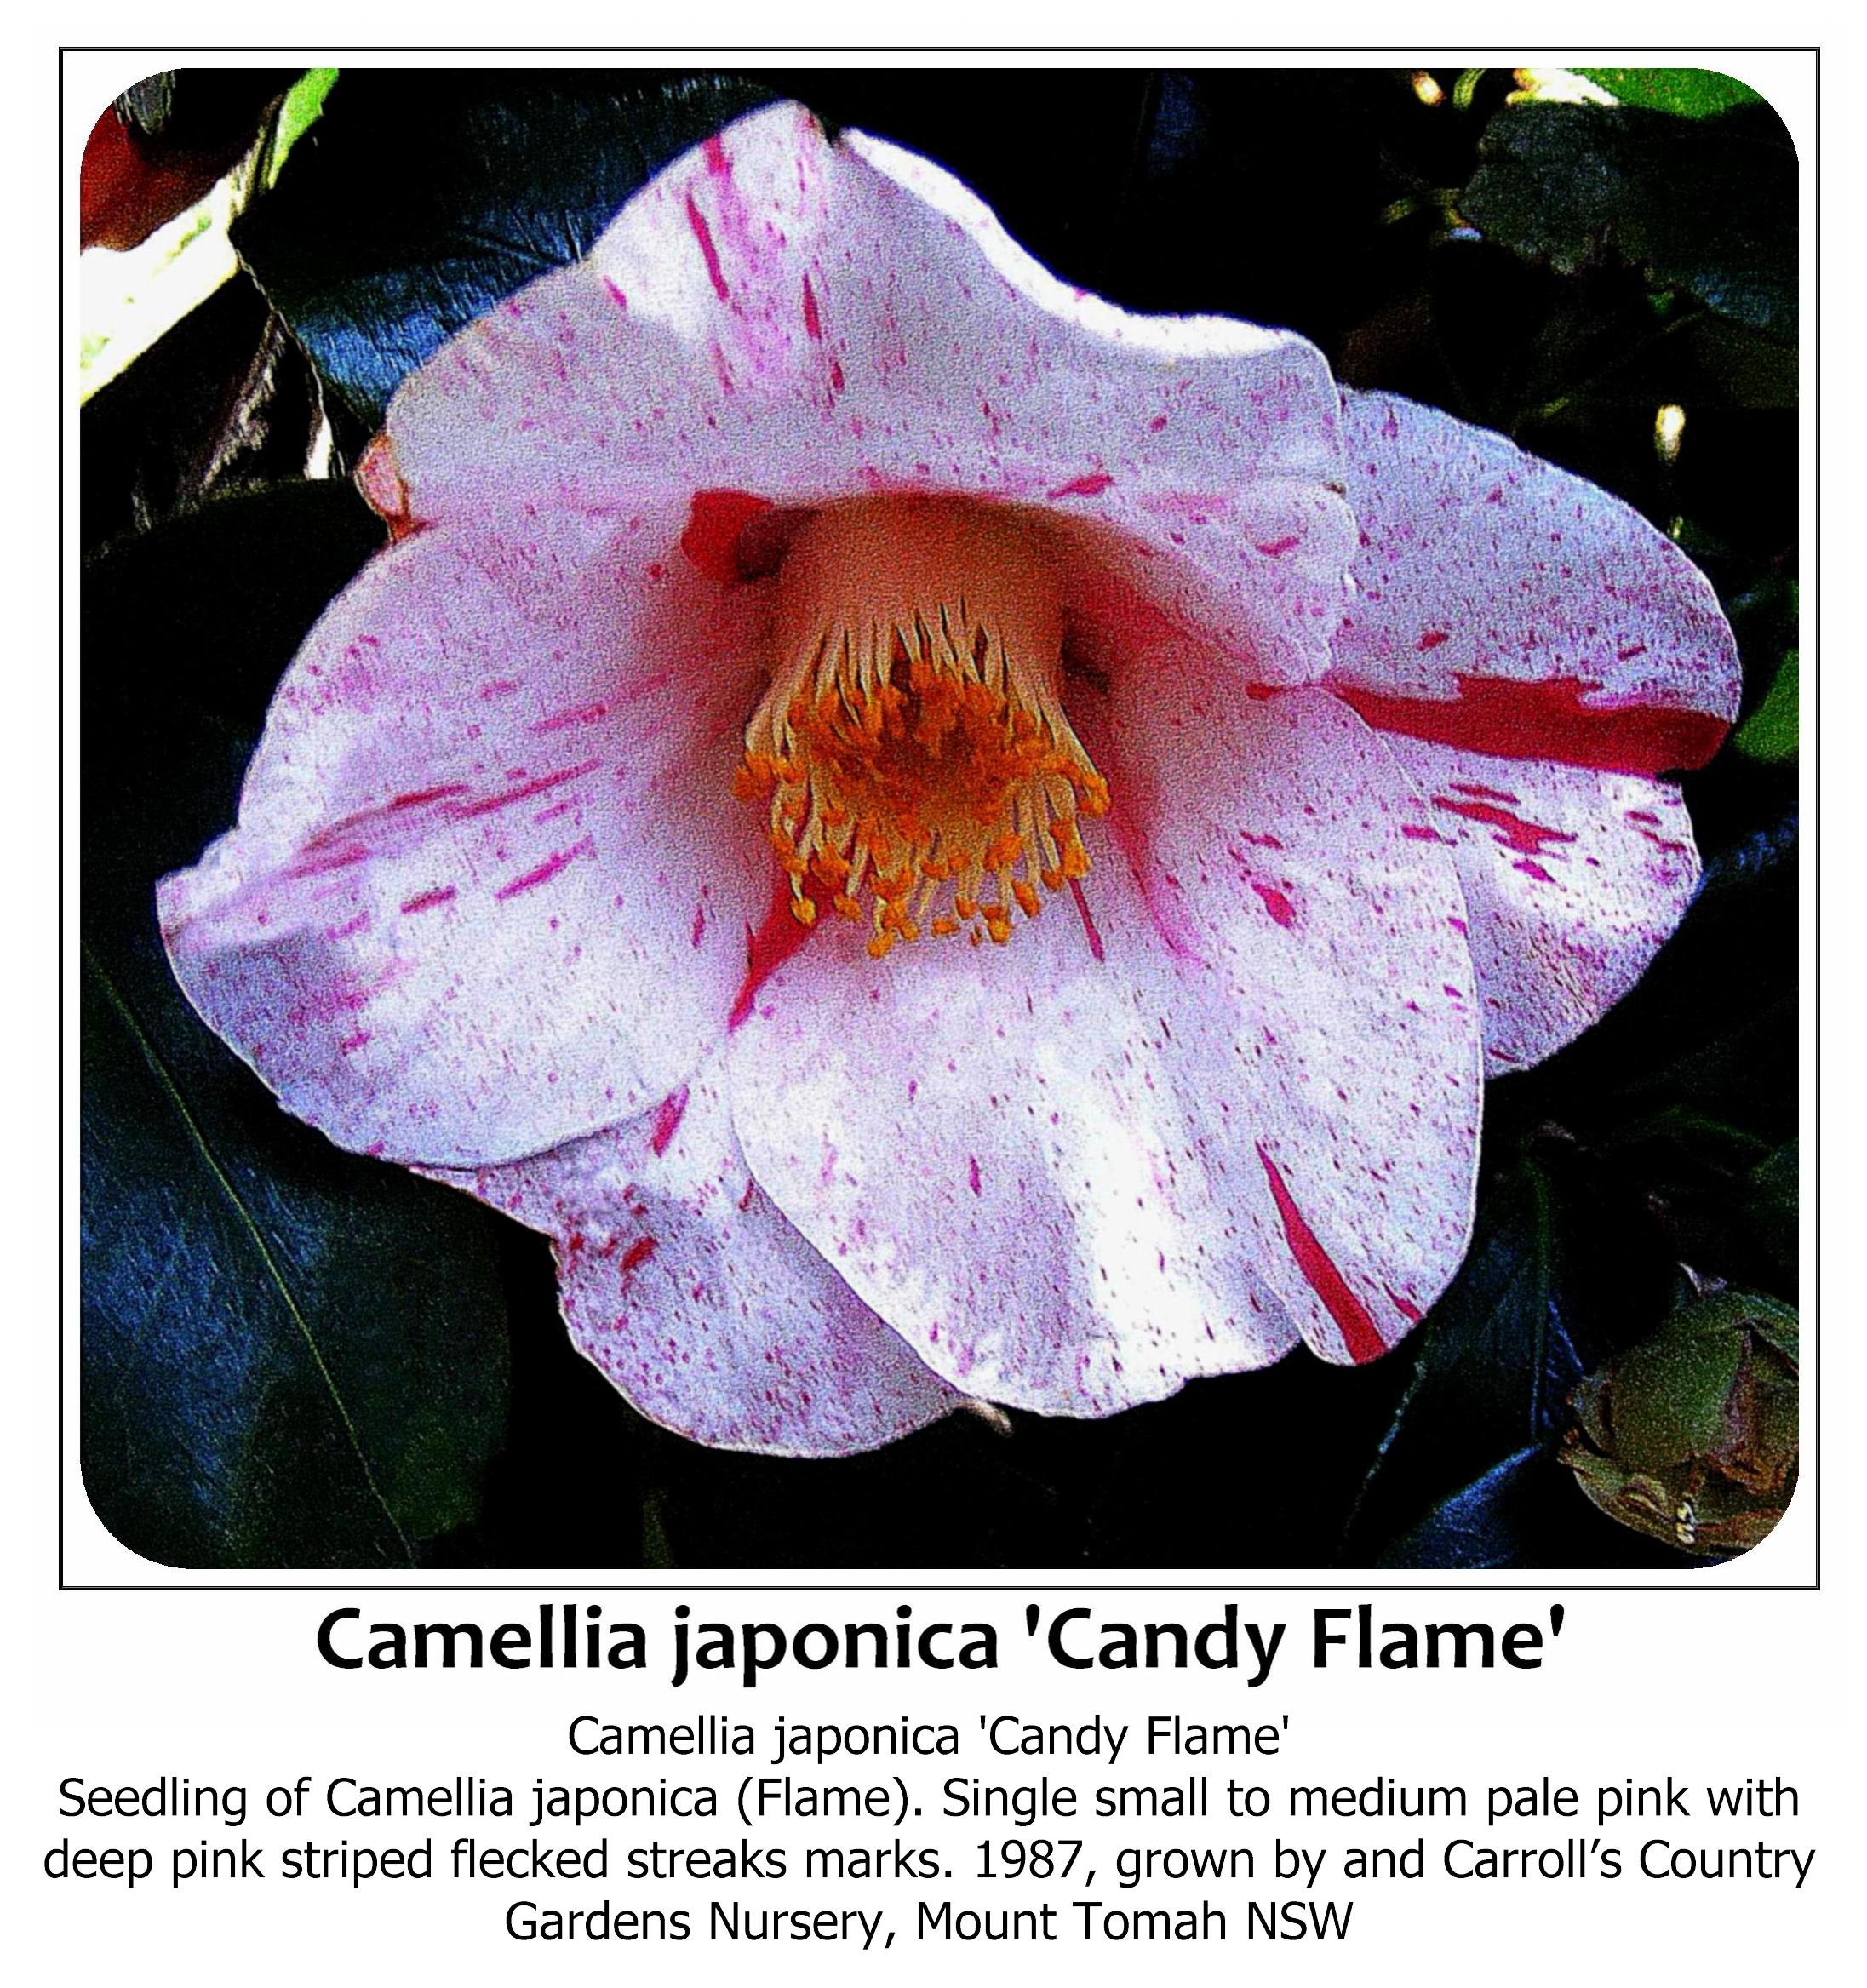 Camellia japonica 'Candy Flame'